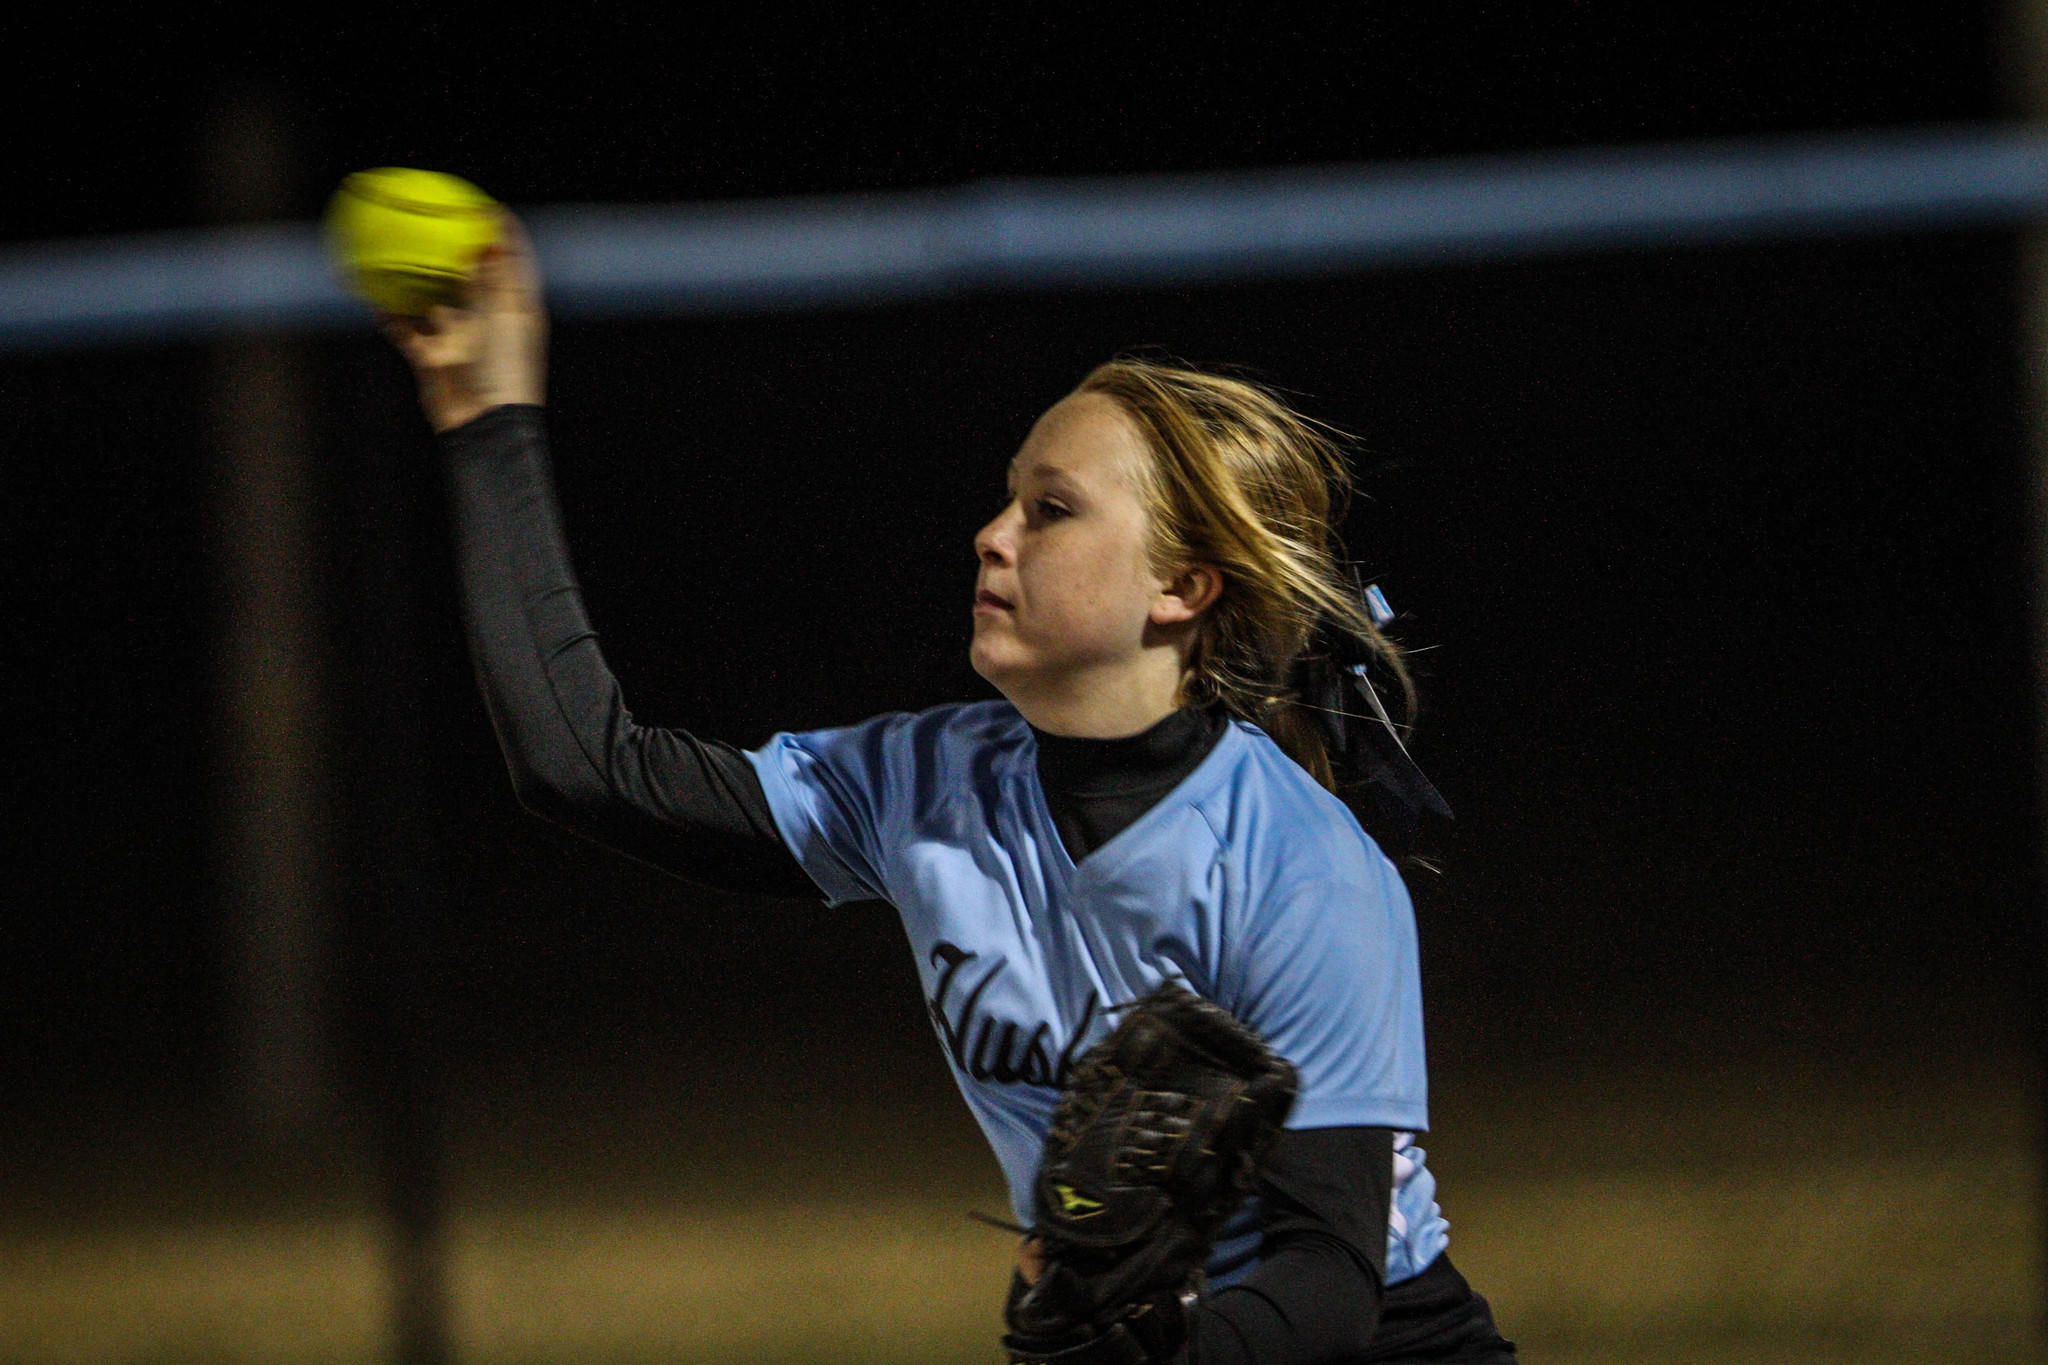 Samantha Worrell led Hagerty to a 16-3 victory over DeLand in Class 8A, District 2 play.